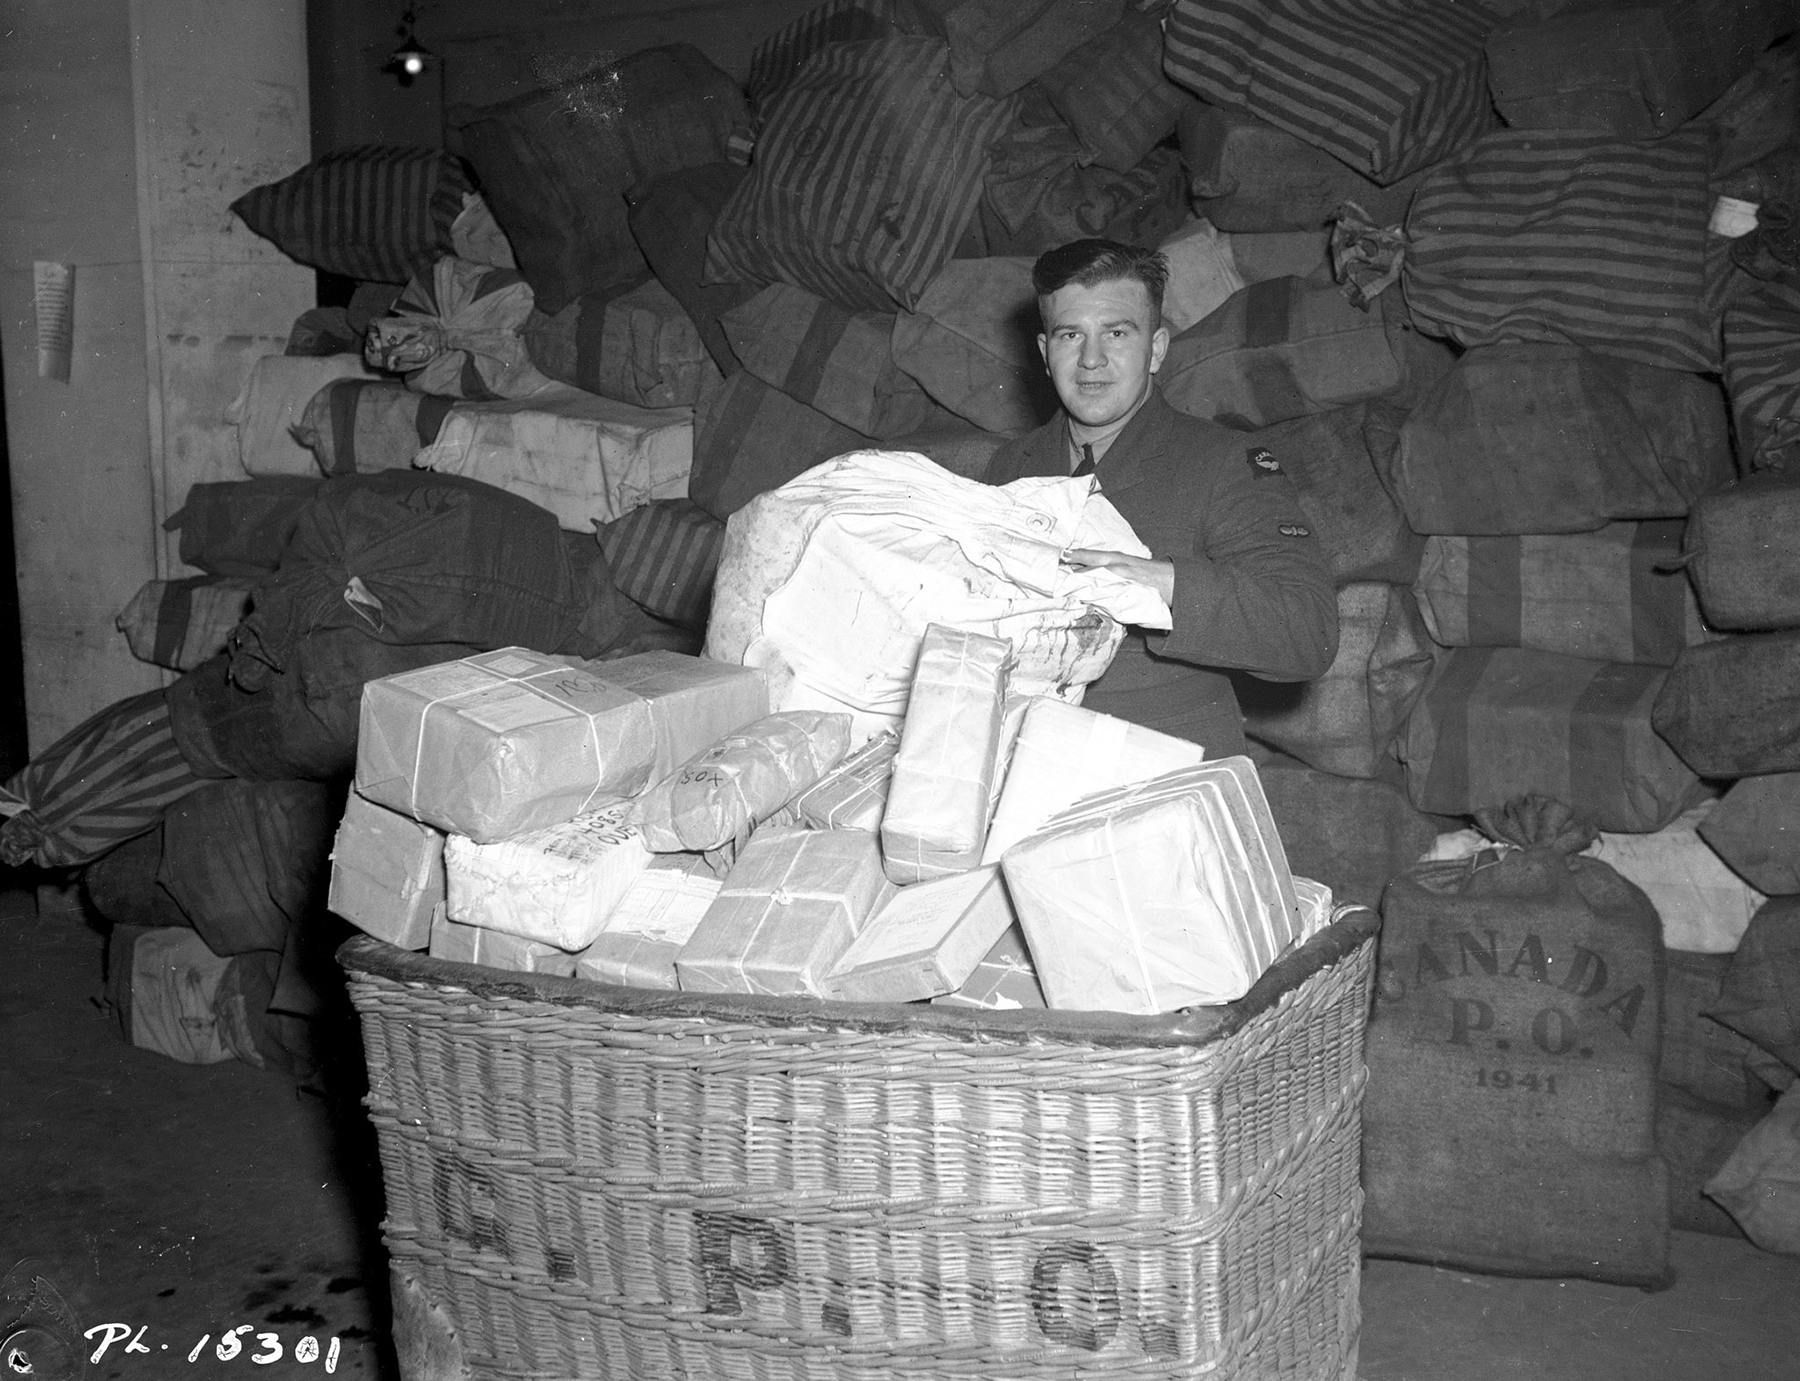 Leading Aircraftman G.A. Argue (Lemberg, Saskatchewan) empties parcel bags at the Base Post Office in the Midlands area of England on January 14, 1943. There will be a lot of happy members of the RCAF Overseas when this large shipment of mail is distributed. PHOTO: DND Archives